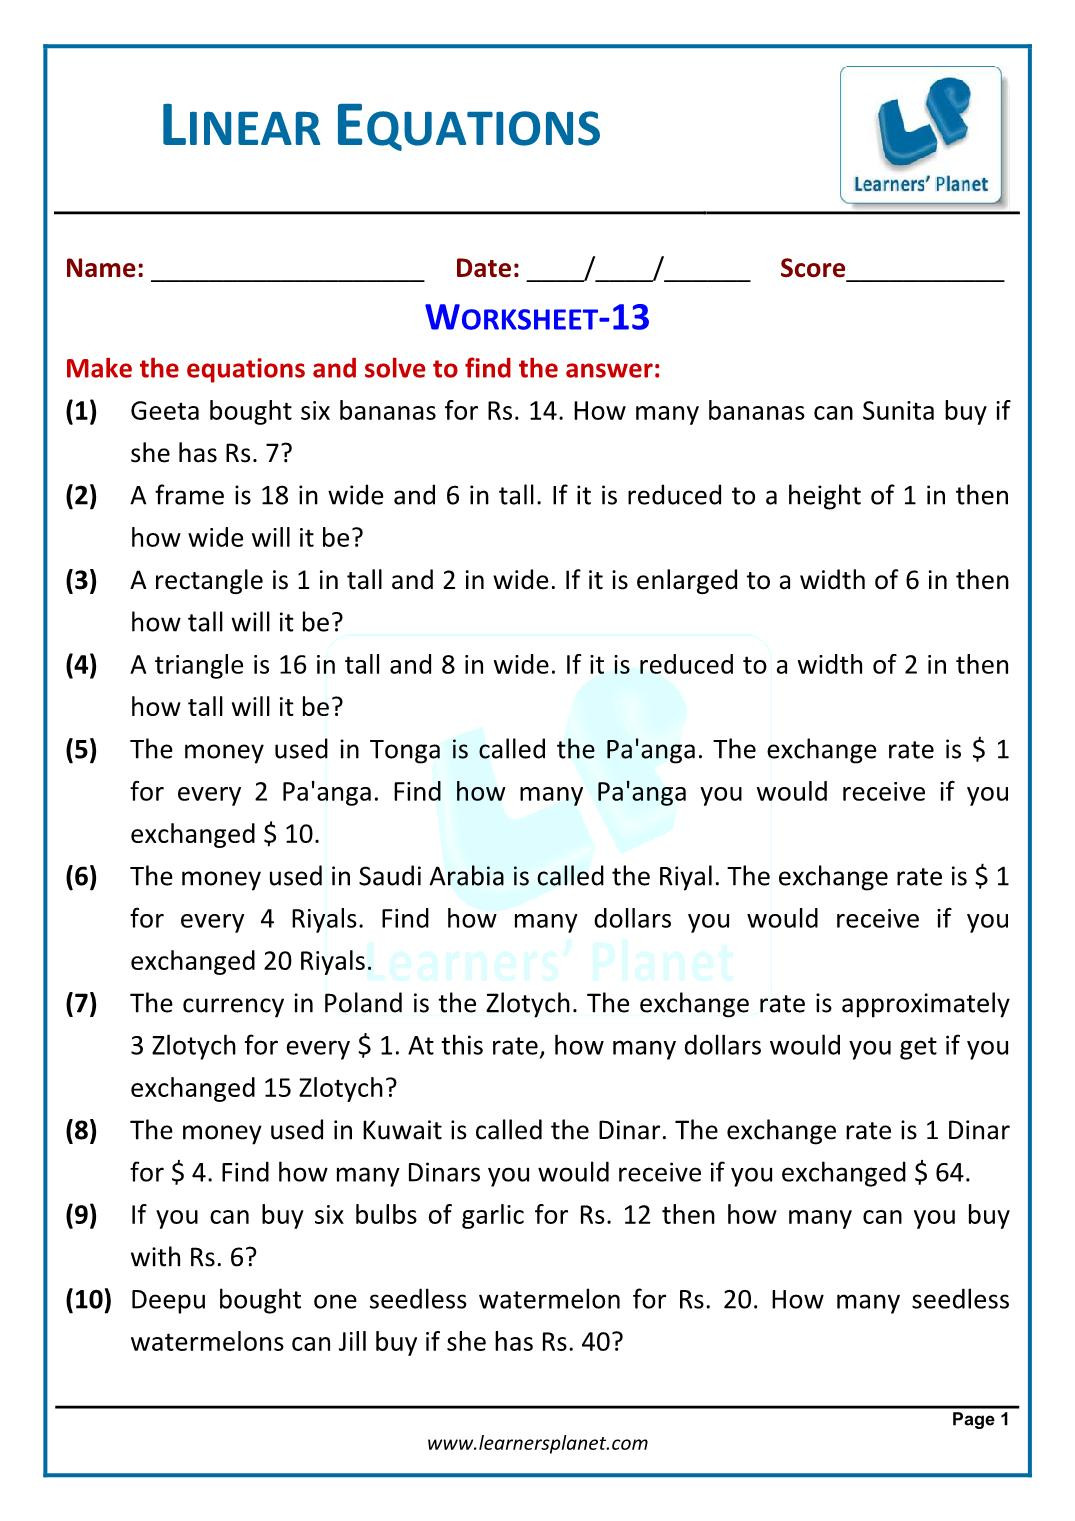 Linear Equation Word Problems Worksheet Worksheet for Linear Equations In One Variable Class 7 Maths